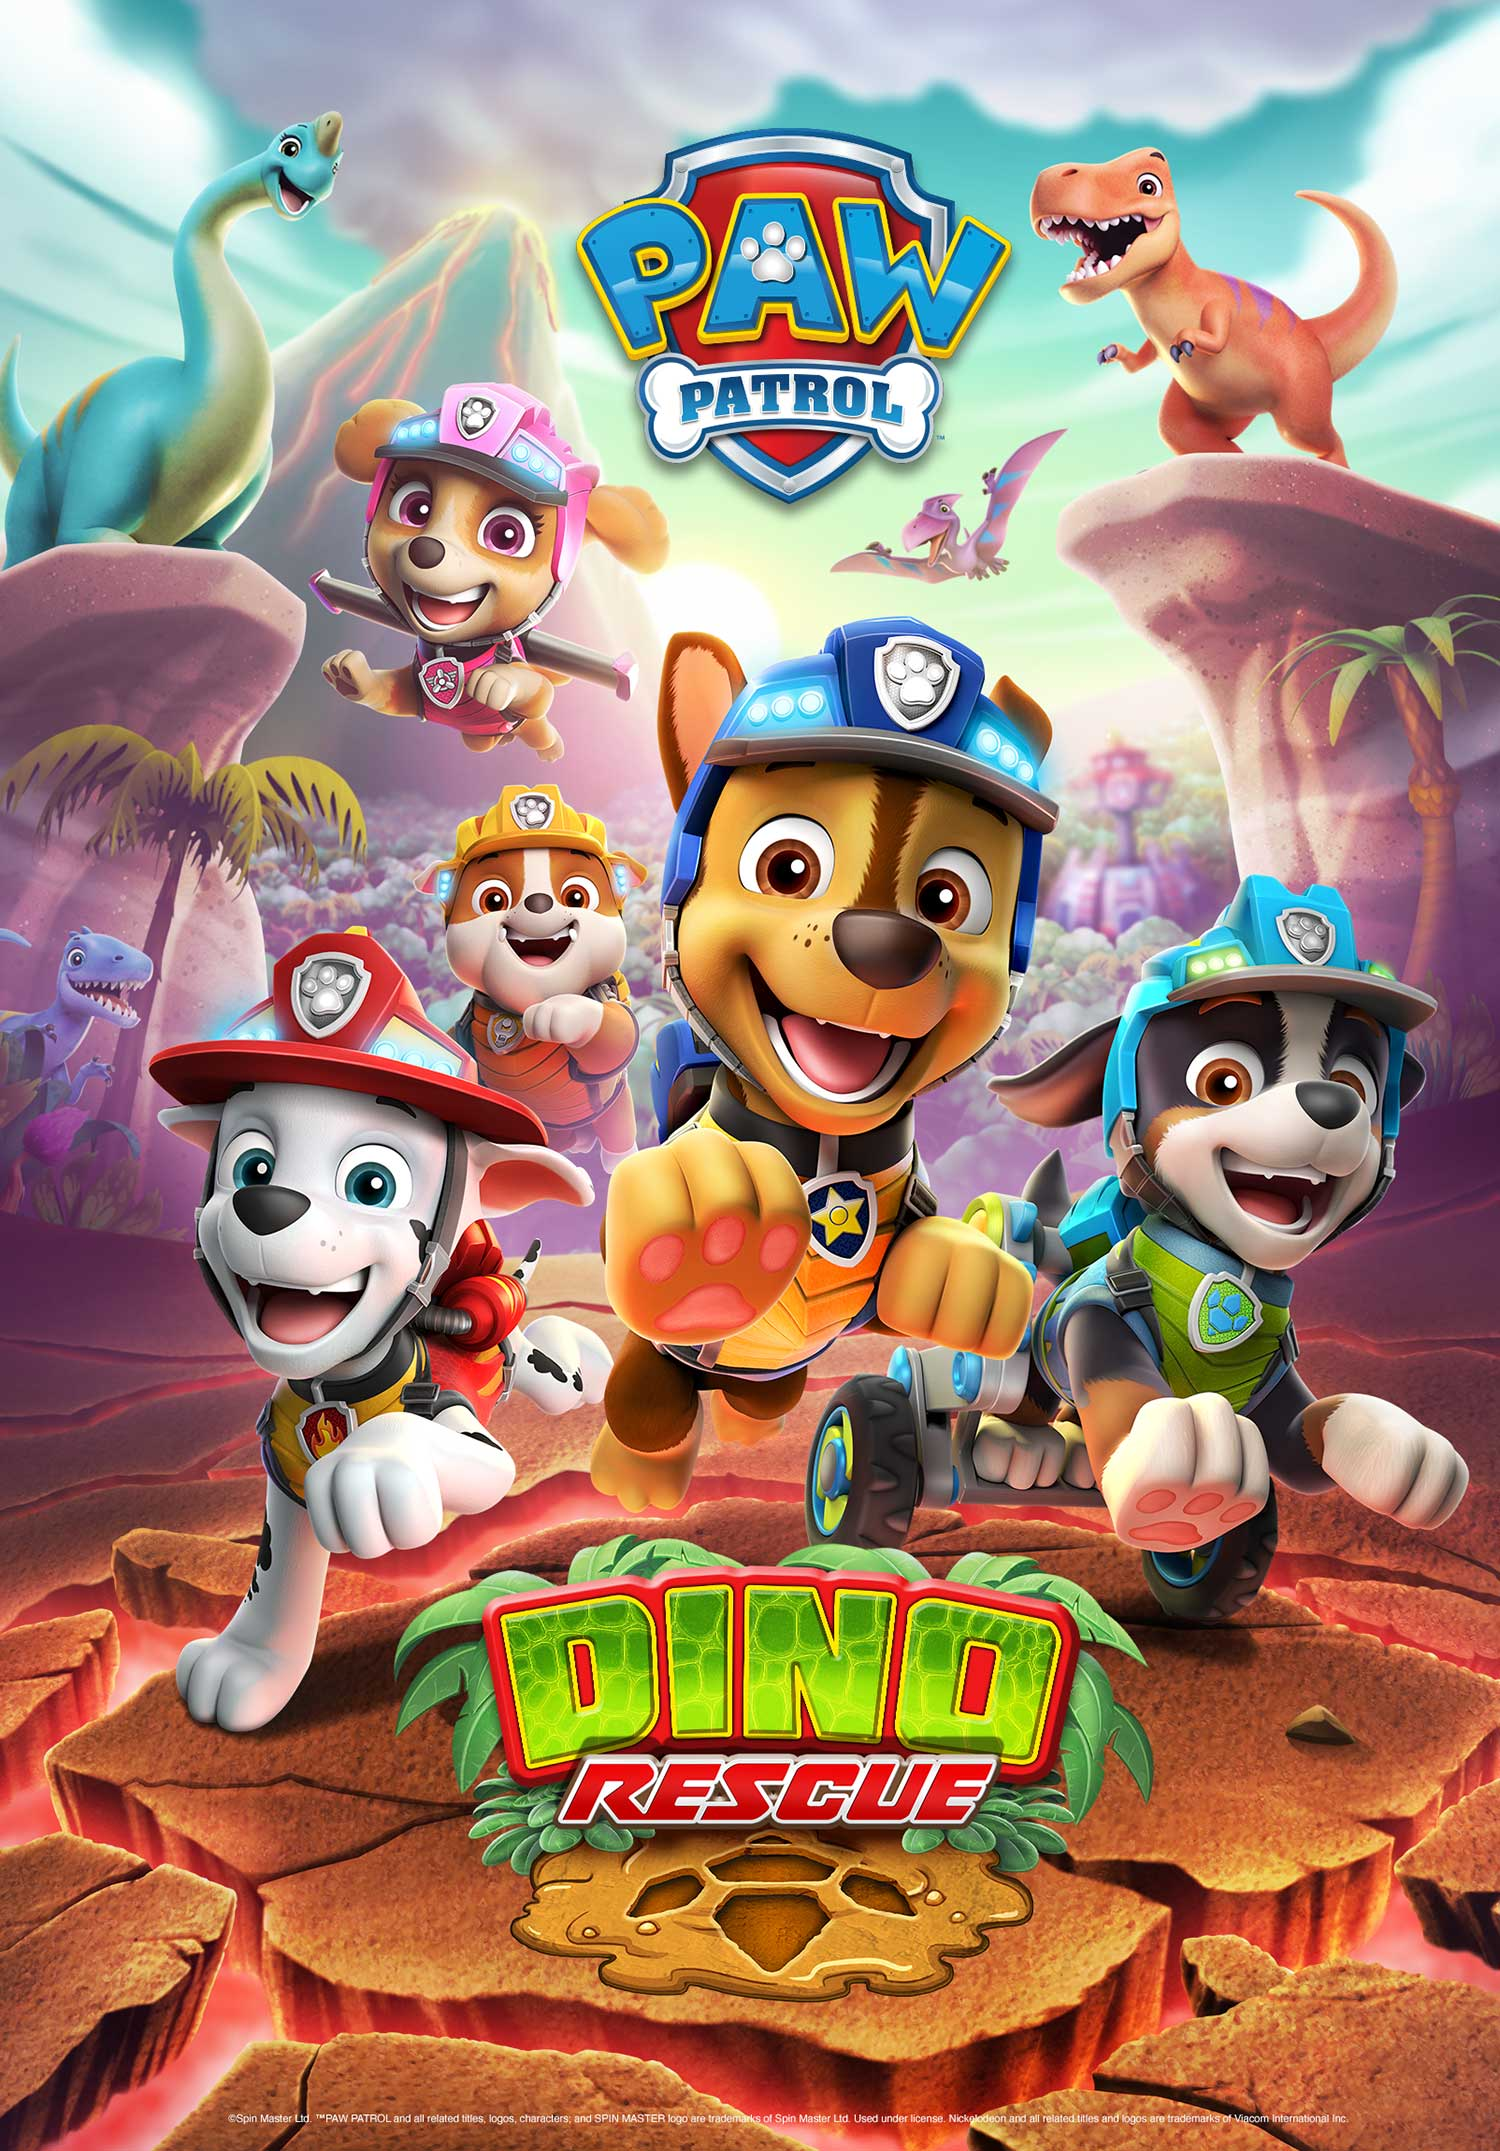 When Does New Paw Patrol Come On : patrol, Sponsored, Content:, Patrol, Prehistoric, Master, Introduces, Rescue, ToyNews